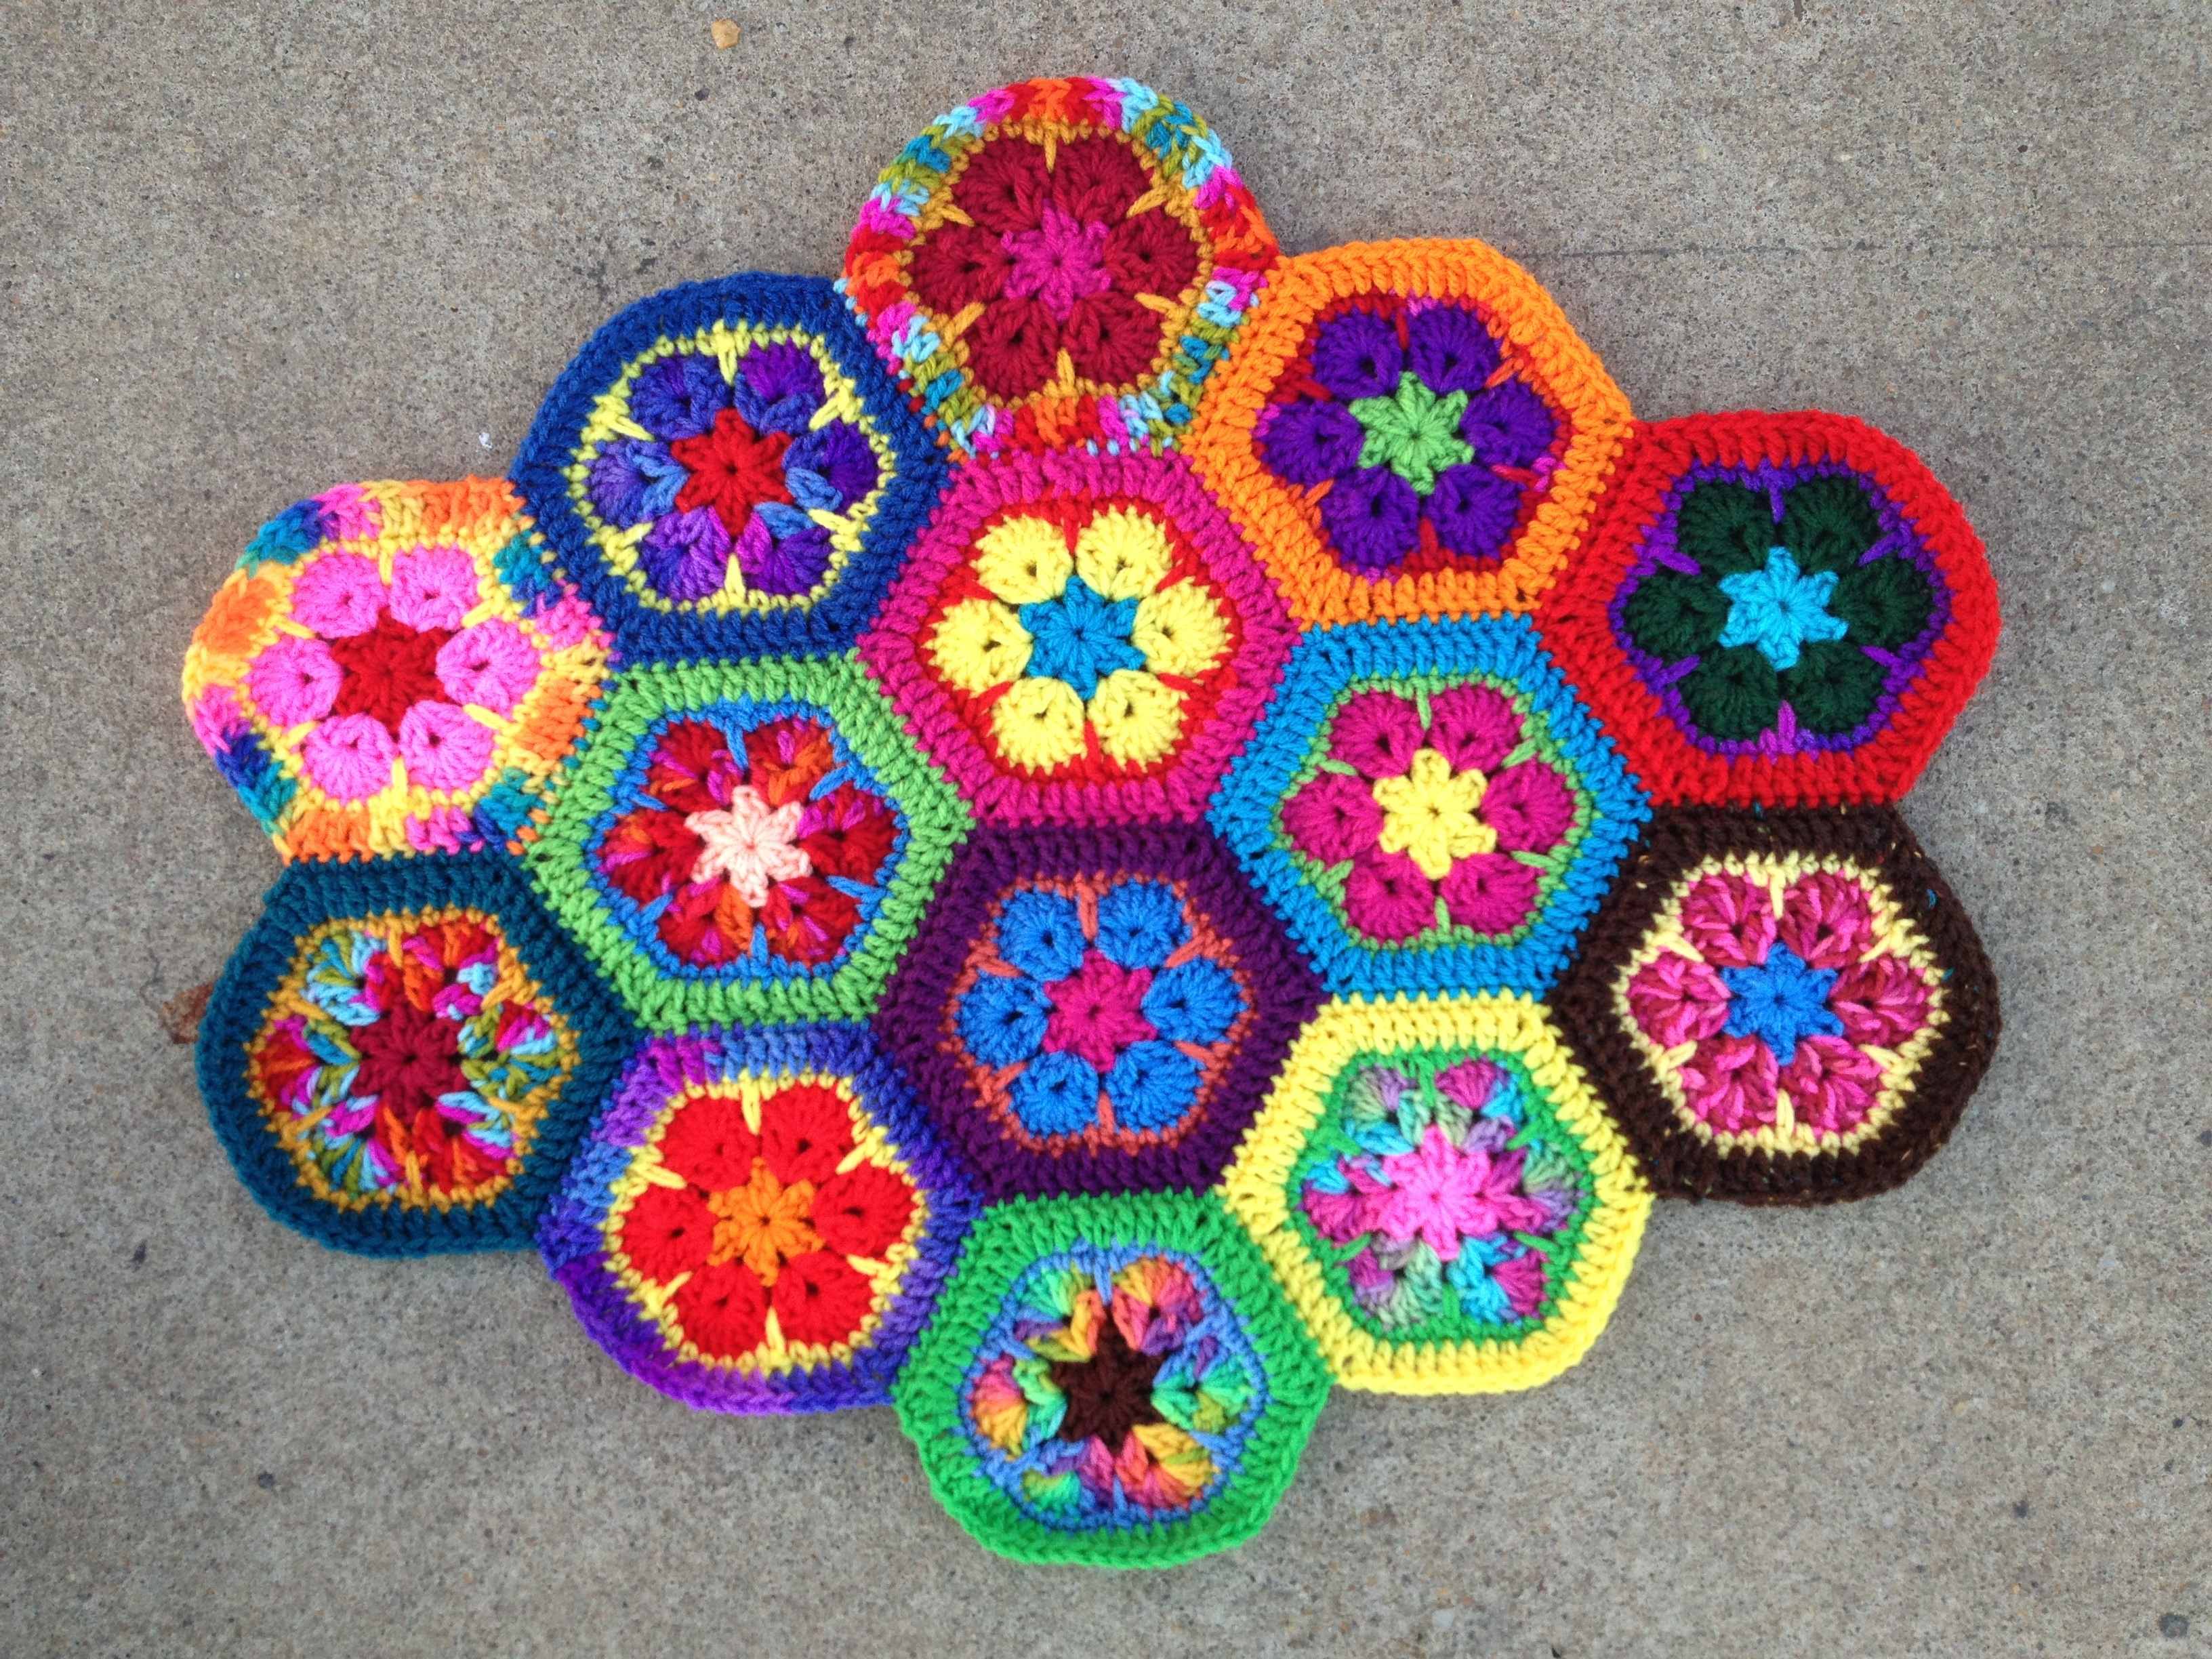 crochetbug, crochet hexagons, crochet flowers, african flower crochet hexagon, crochet meditation